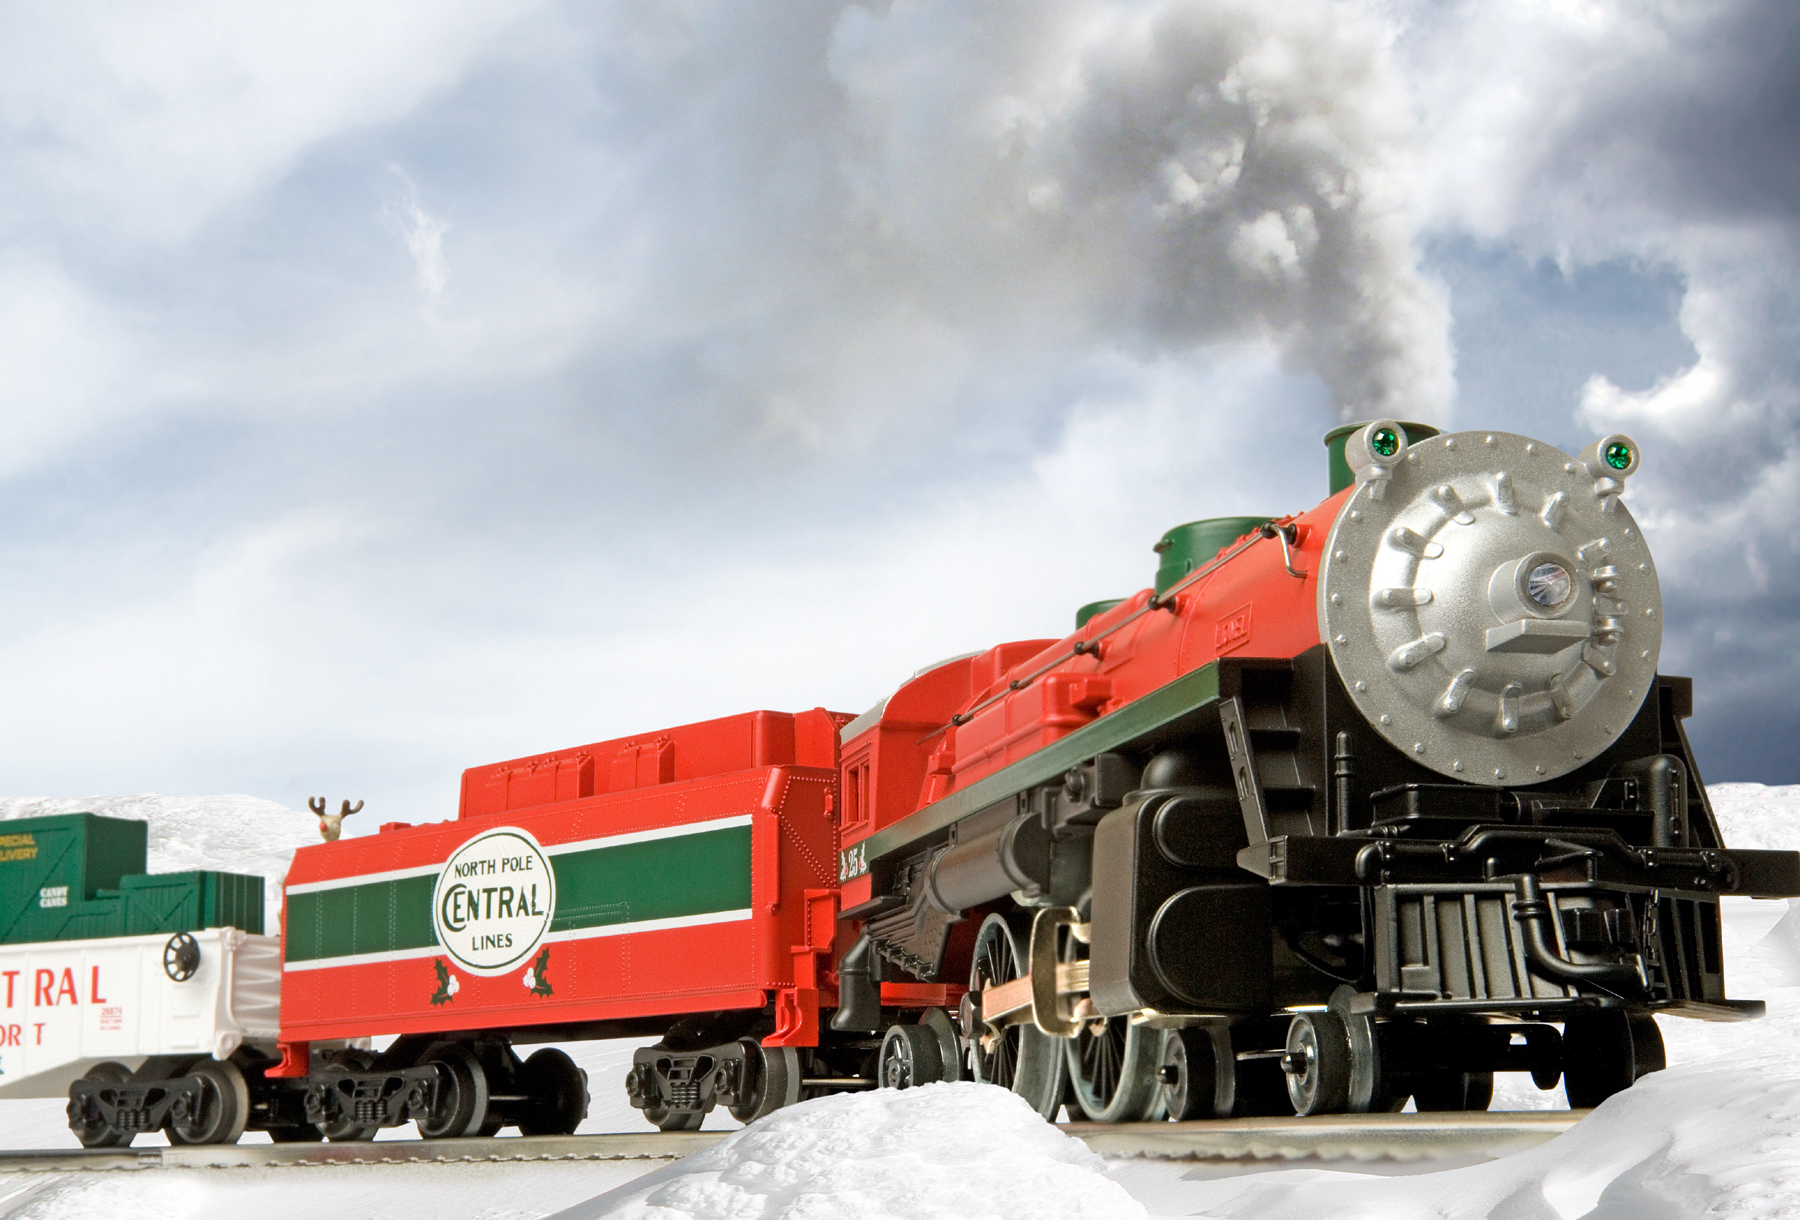 North Pole Central Christmas Train Conventional 442